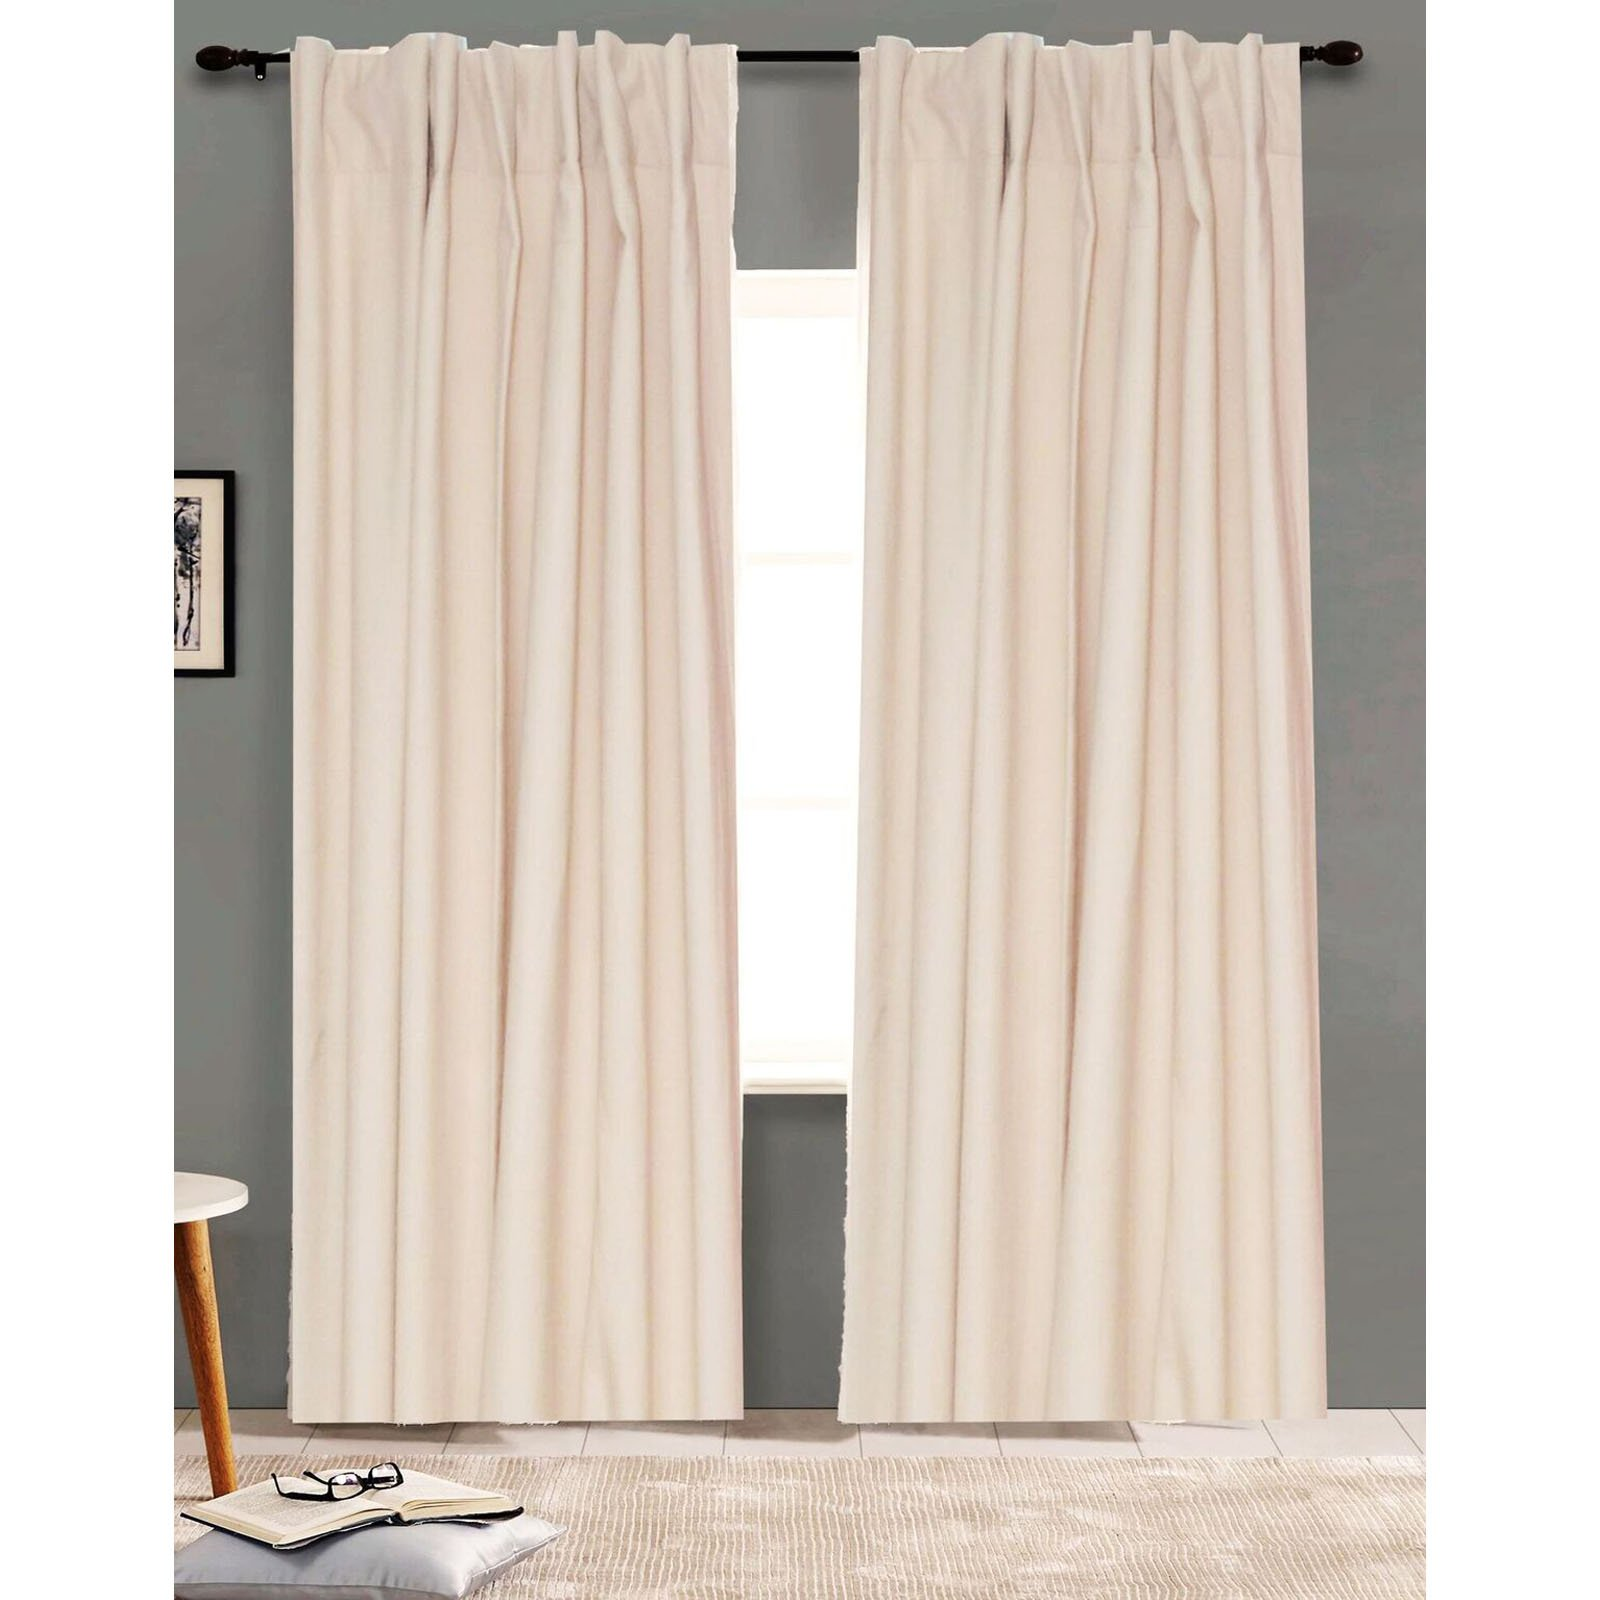 American Colors Brand Heritage Cotton Lined Curtain Panel Ivory